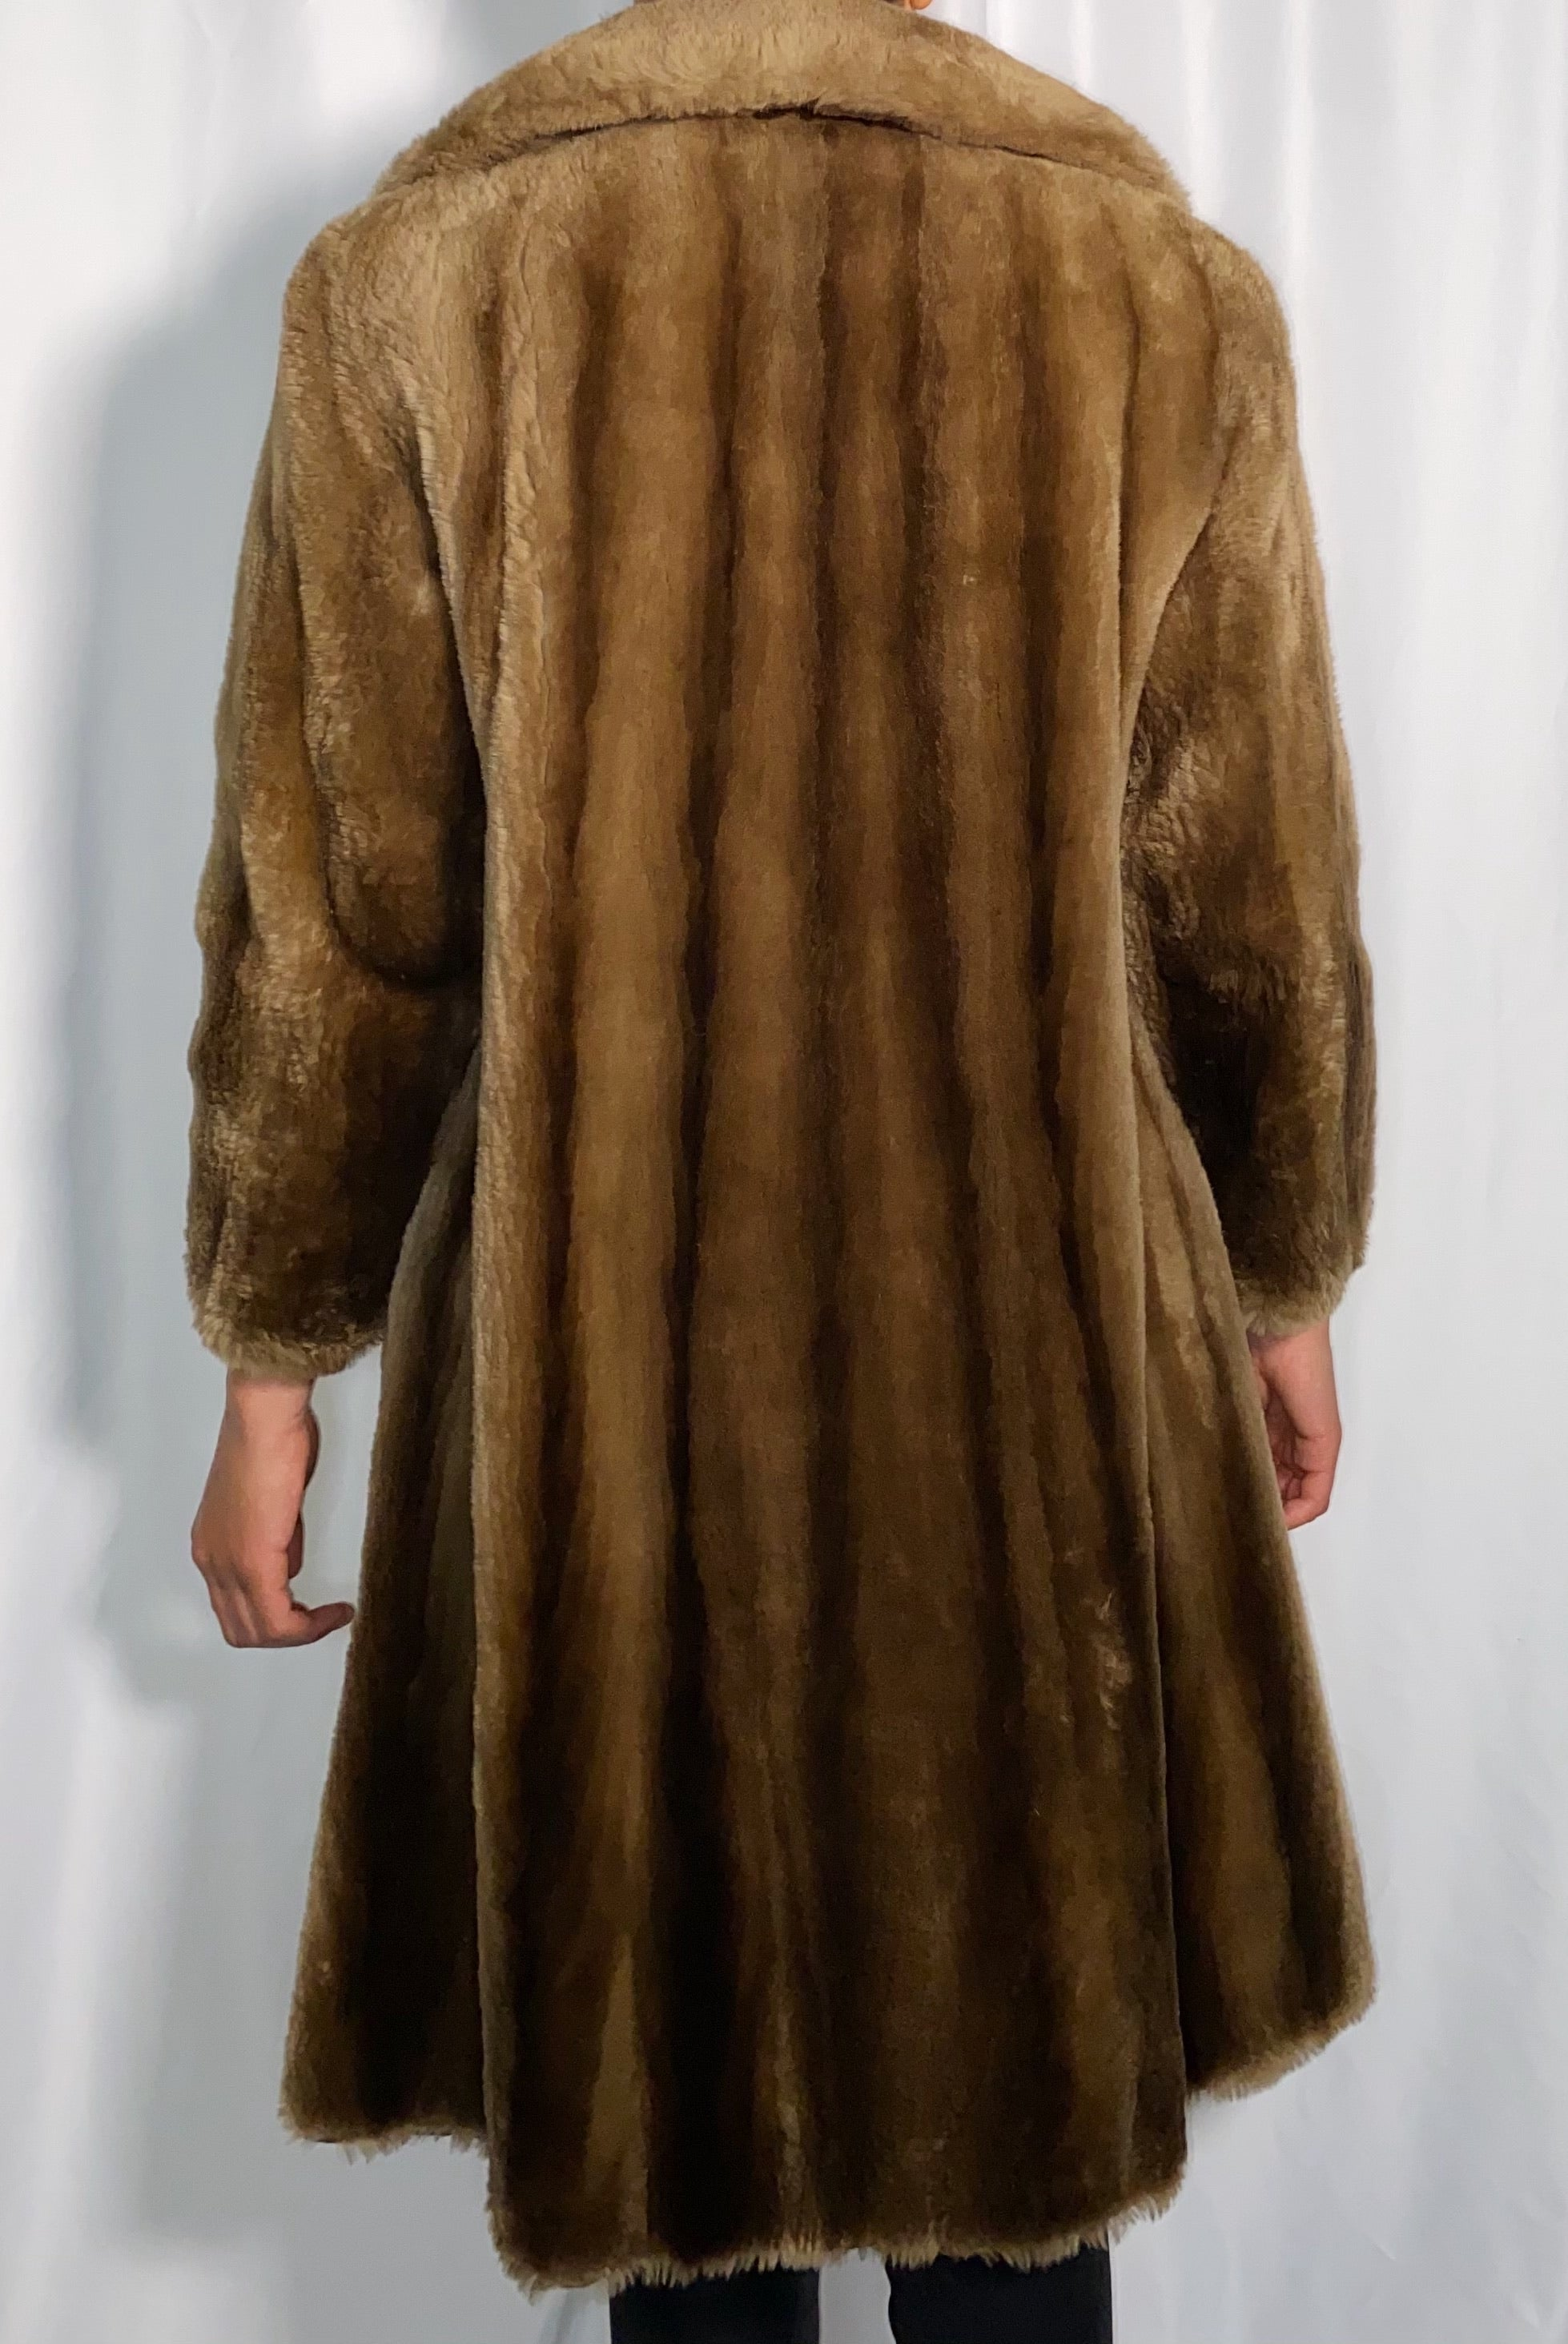 Vintage Barbarsuly Bros. Fur Coat (size medium)